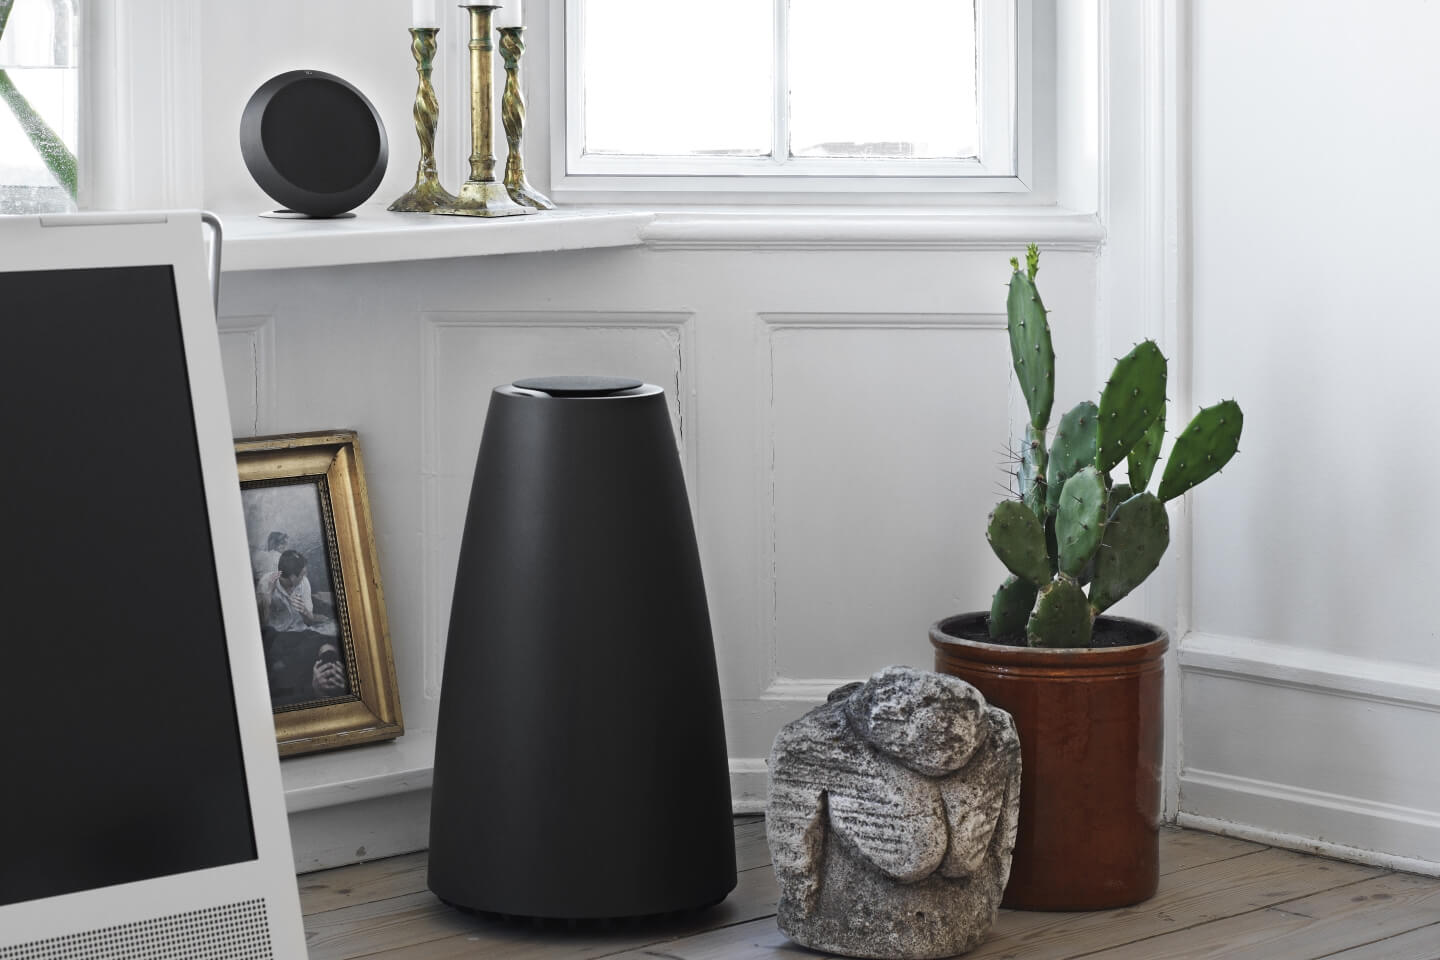 BeoPlay S8- compact 2.1 stereo- speaker system.